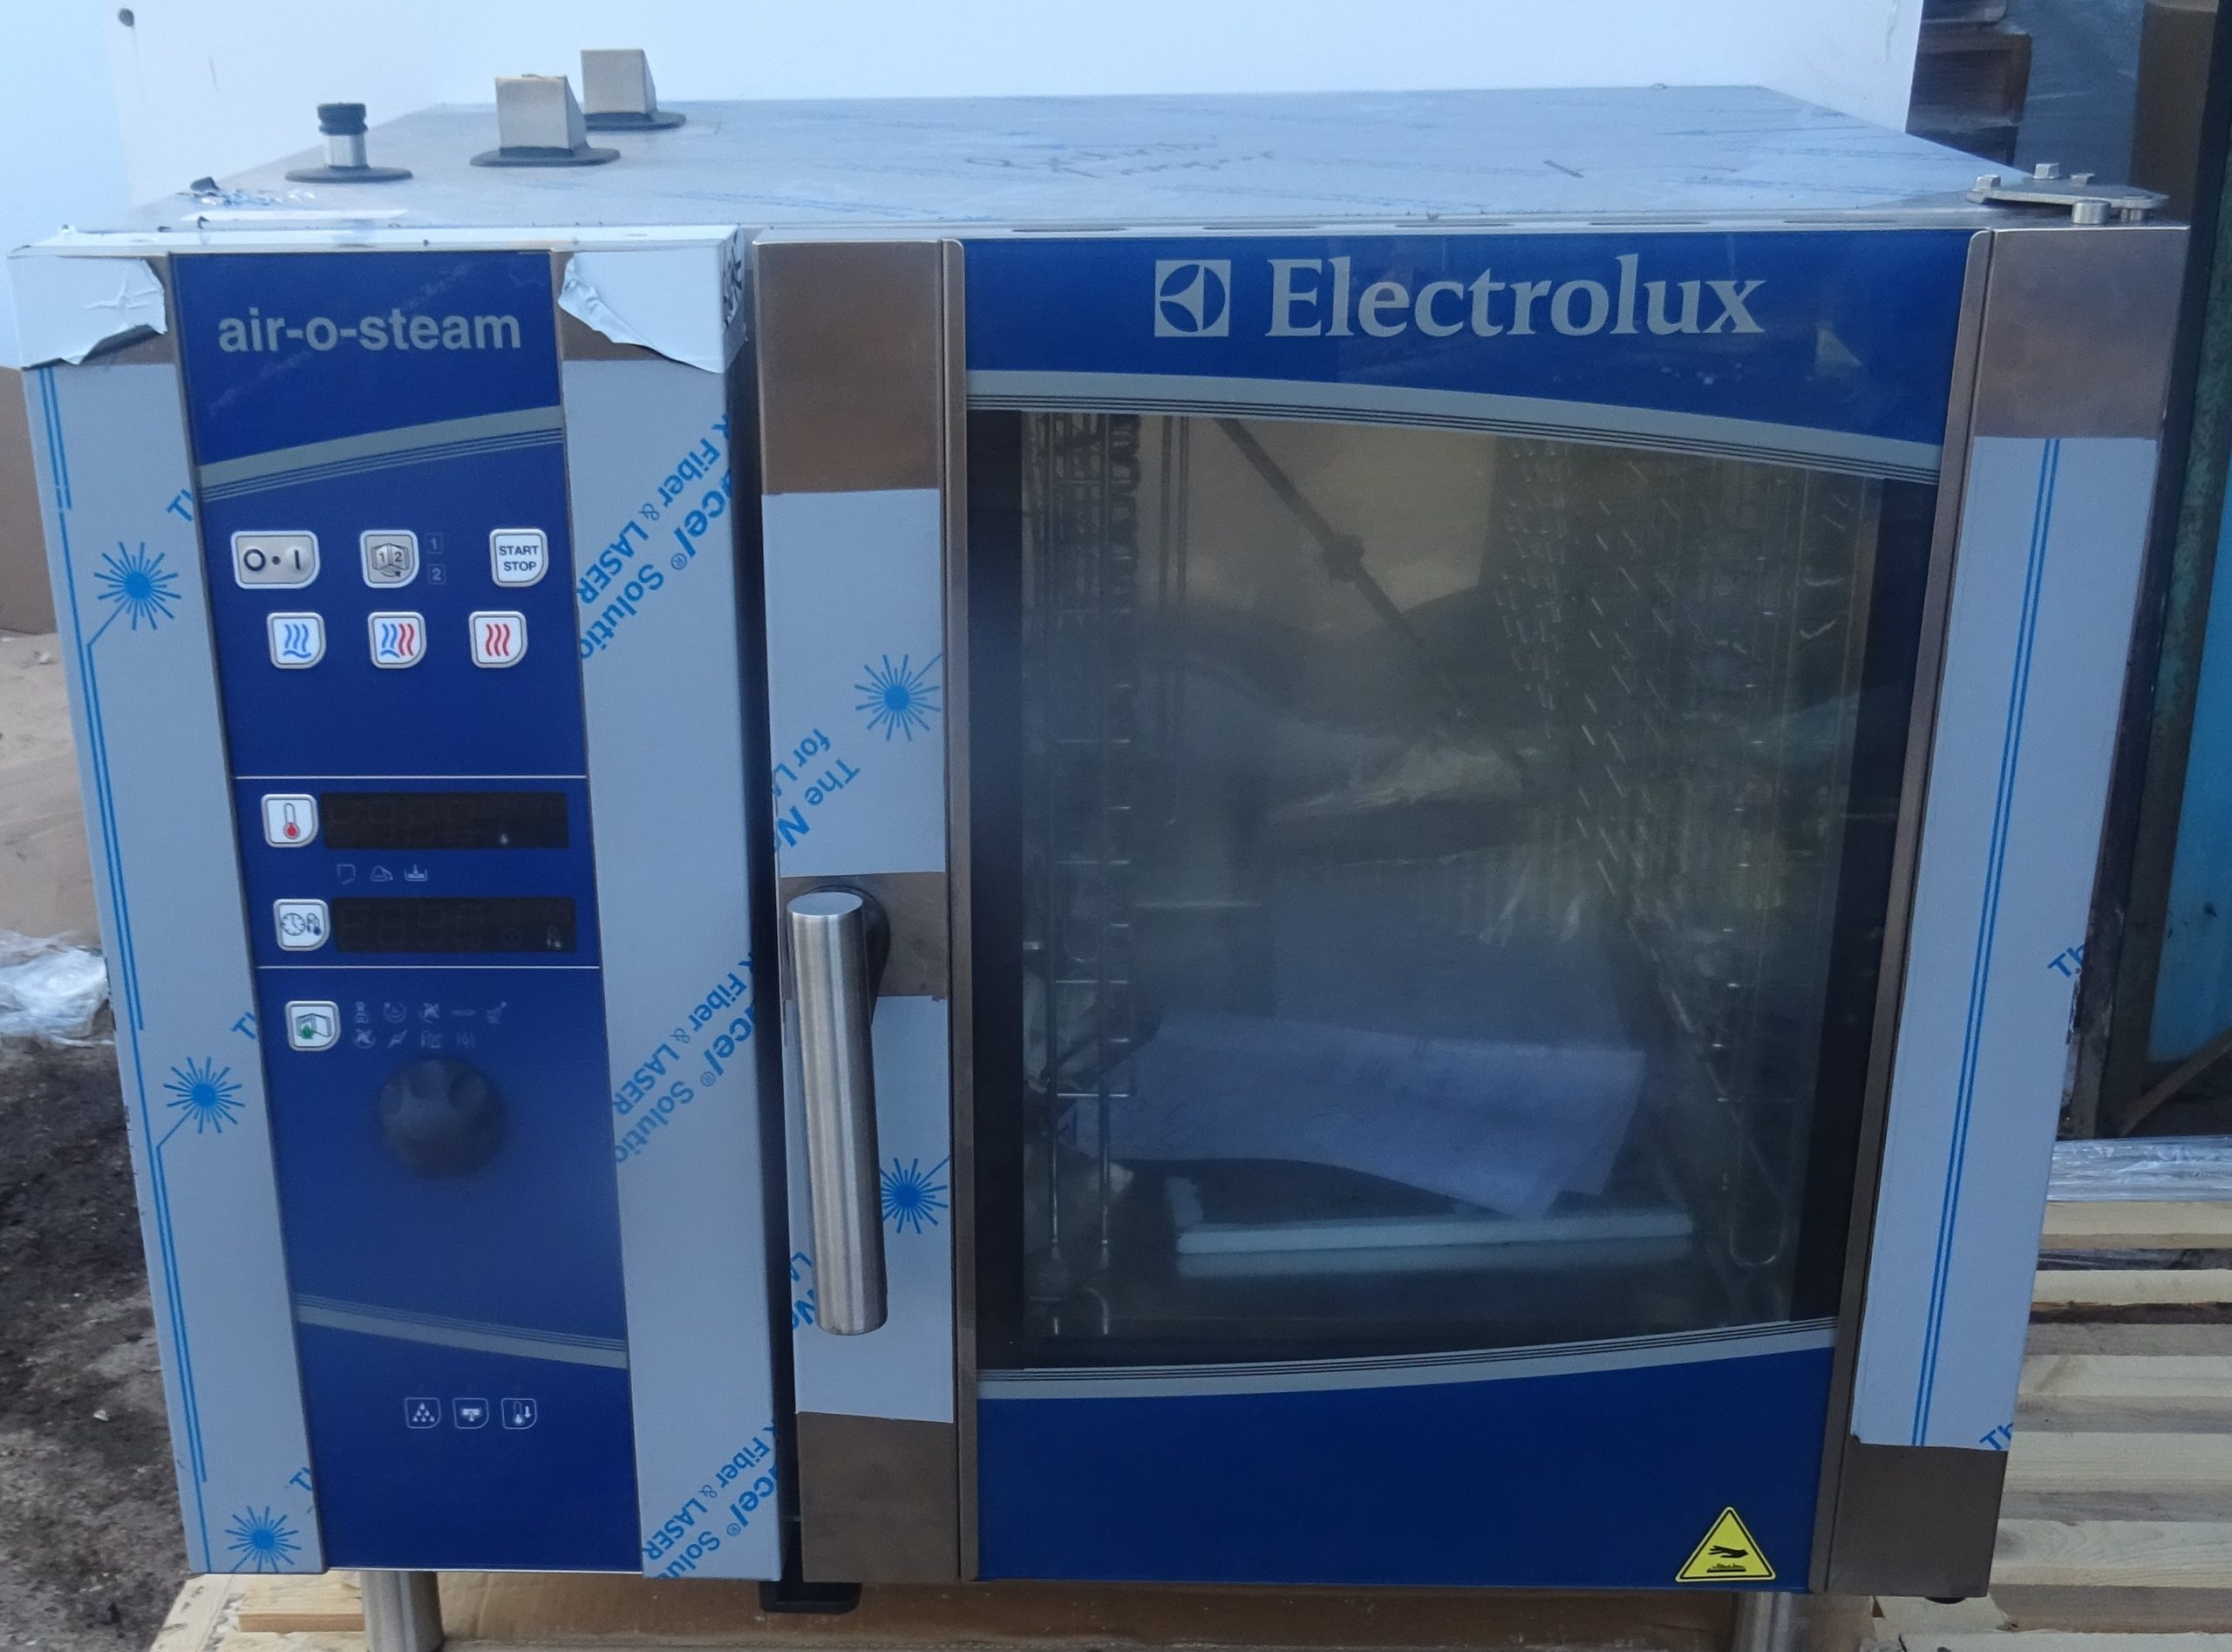 ELECTROLUX air-o-steam 6 Grid Combi Oven